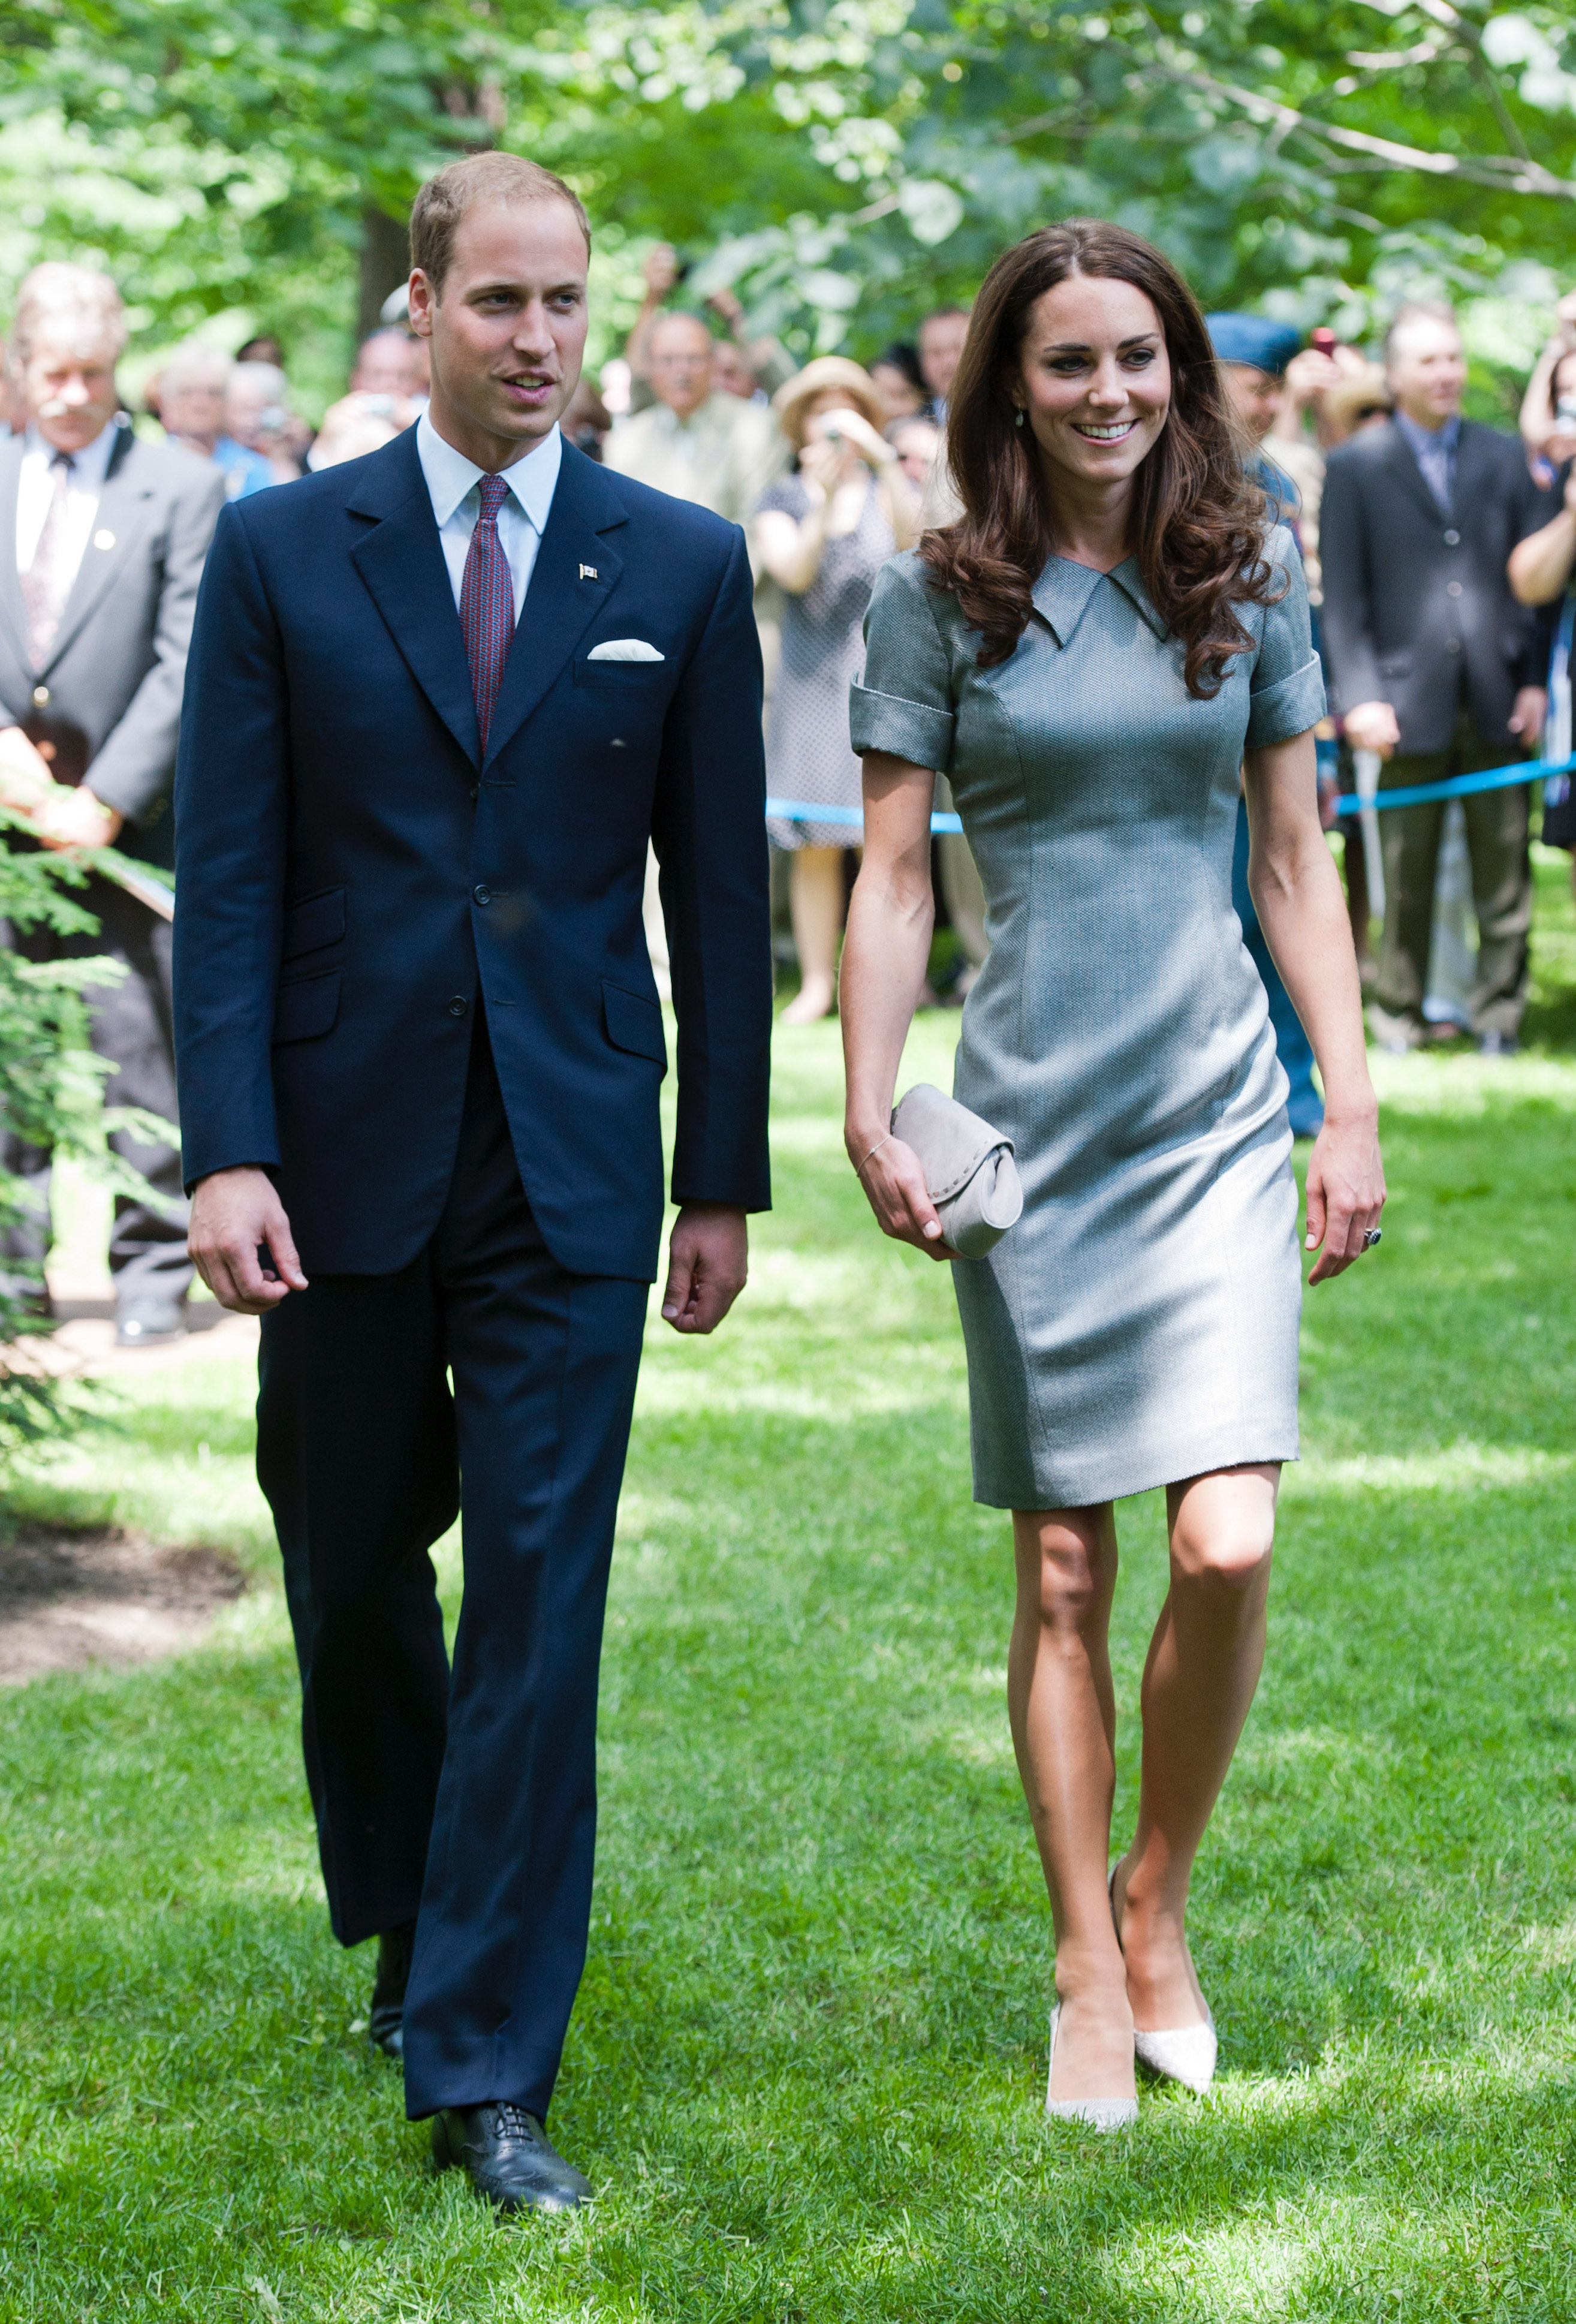 """July 2nd, 2011 Arriving at a tree planting ceremony in Ottawa, Canada.  Kate wears a grey Catherine Walker """"Kensington"""" dress, grey Tabitha Simmons pumps, and a small clutch by Hobbs. Catherine Walker was one of Princess Diana's favorite designers."""